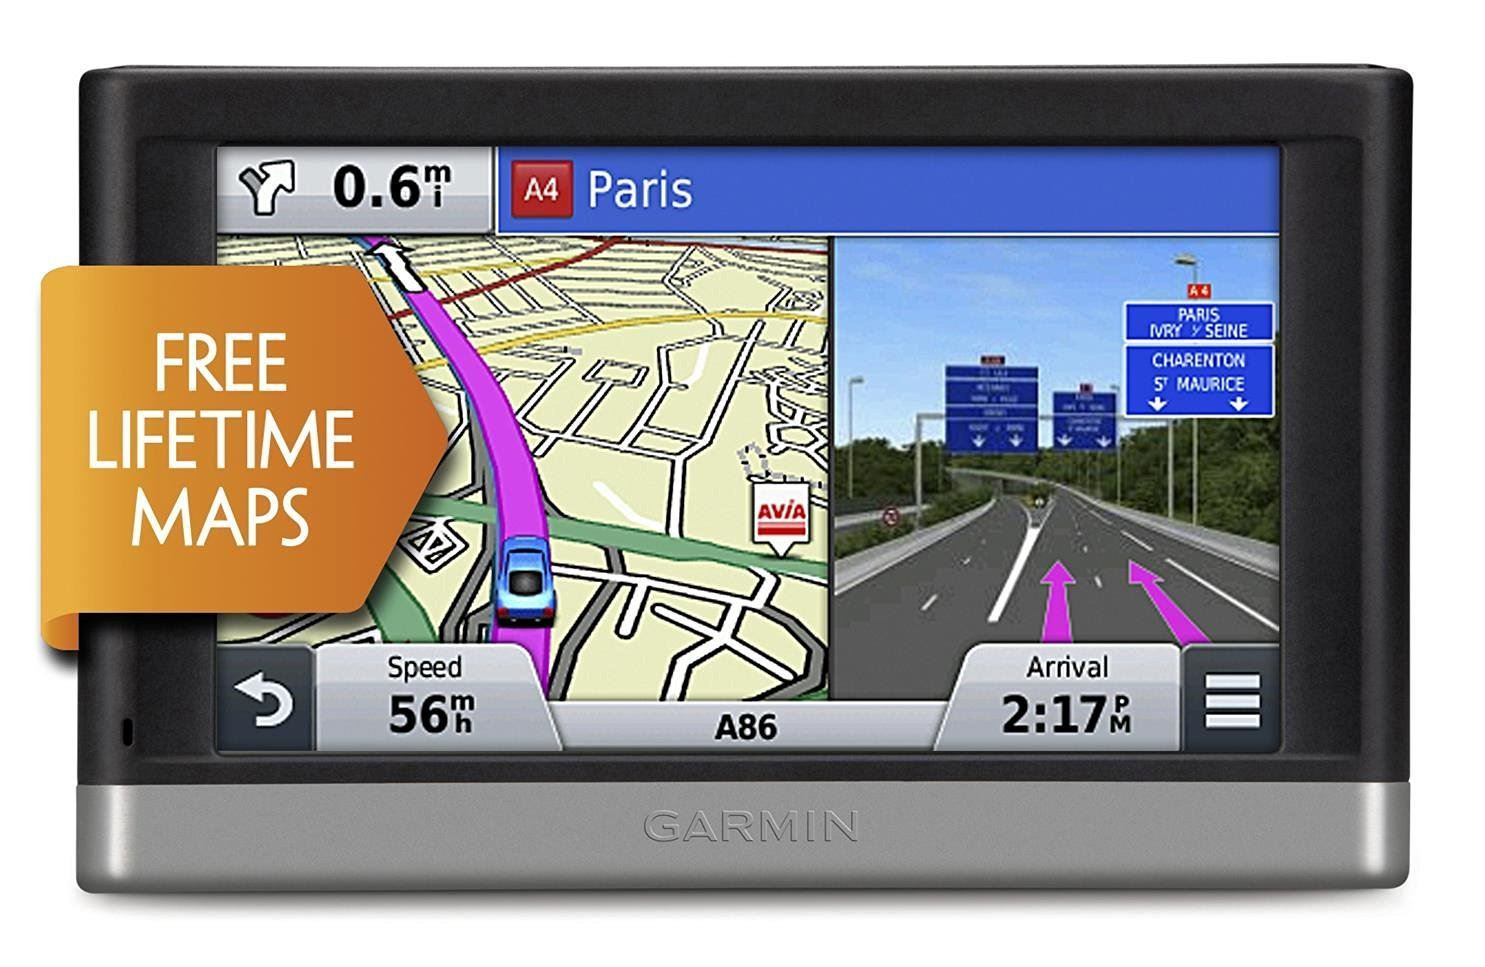 d4f32dca-26ac-426d-903c-db68896fcf72 Garmin Gps Lifetime Maps And Traffic on igo gps maps, hunting gps maps, offline gps maps, gas well location gps maps, gps satellite maps, humminbird gps maps, gps topo maps, gps montana ownership maps, curacao gps maps, disney gps maps, nokia gps maps, dominican republic gps maps, best gps maps, delorme gps maps, gps lake maps, gps trail maps, sygic gps maps, war game maps, national geographic gps maps, snowmobile gps maps,